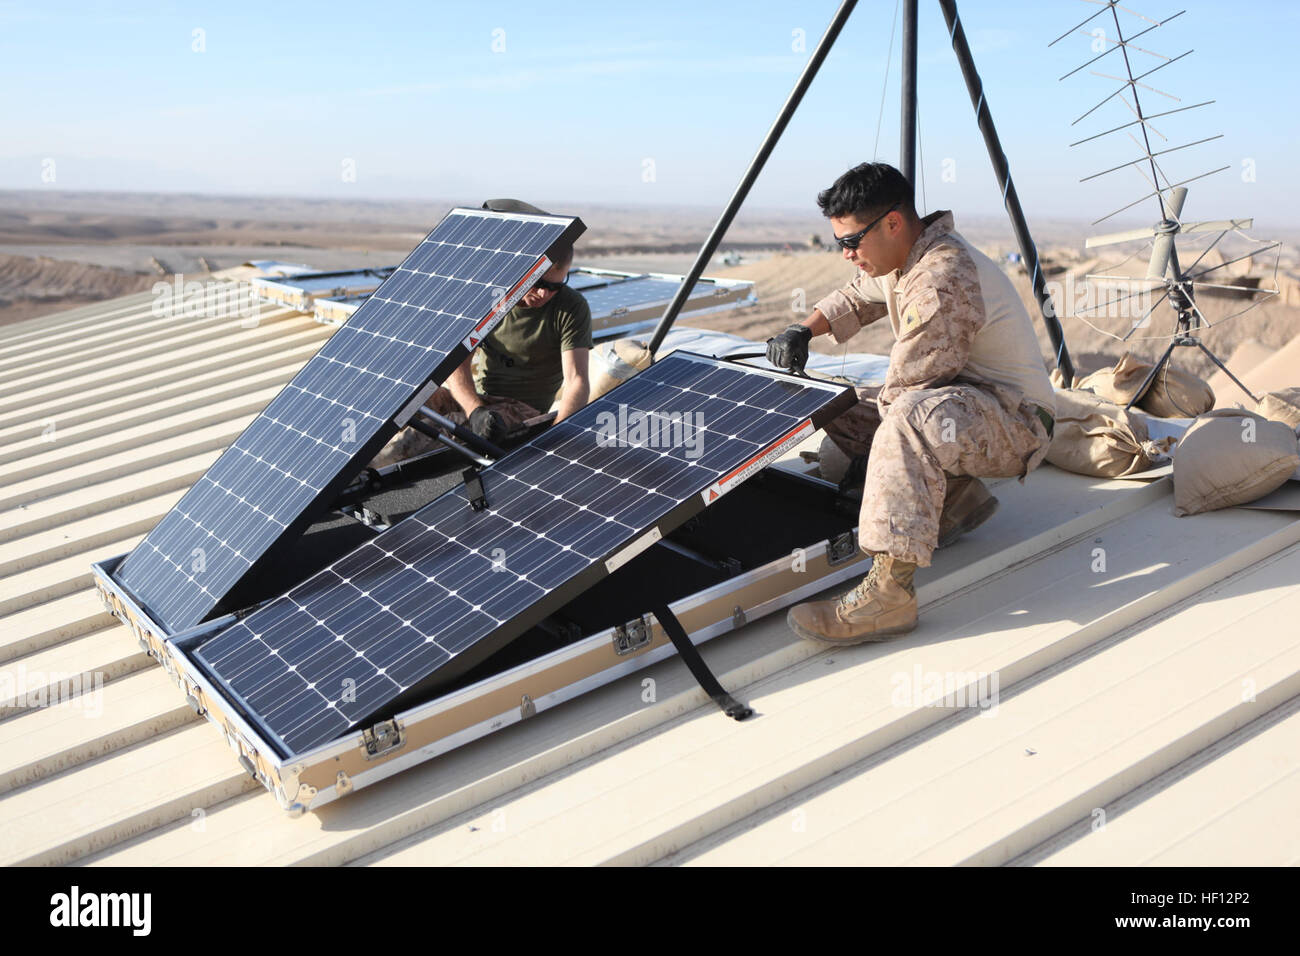 Marine solar panel installations first mate marine inc - U S Marine Corps Cpl Robert G Sutton Left And Cpl Moses